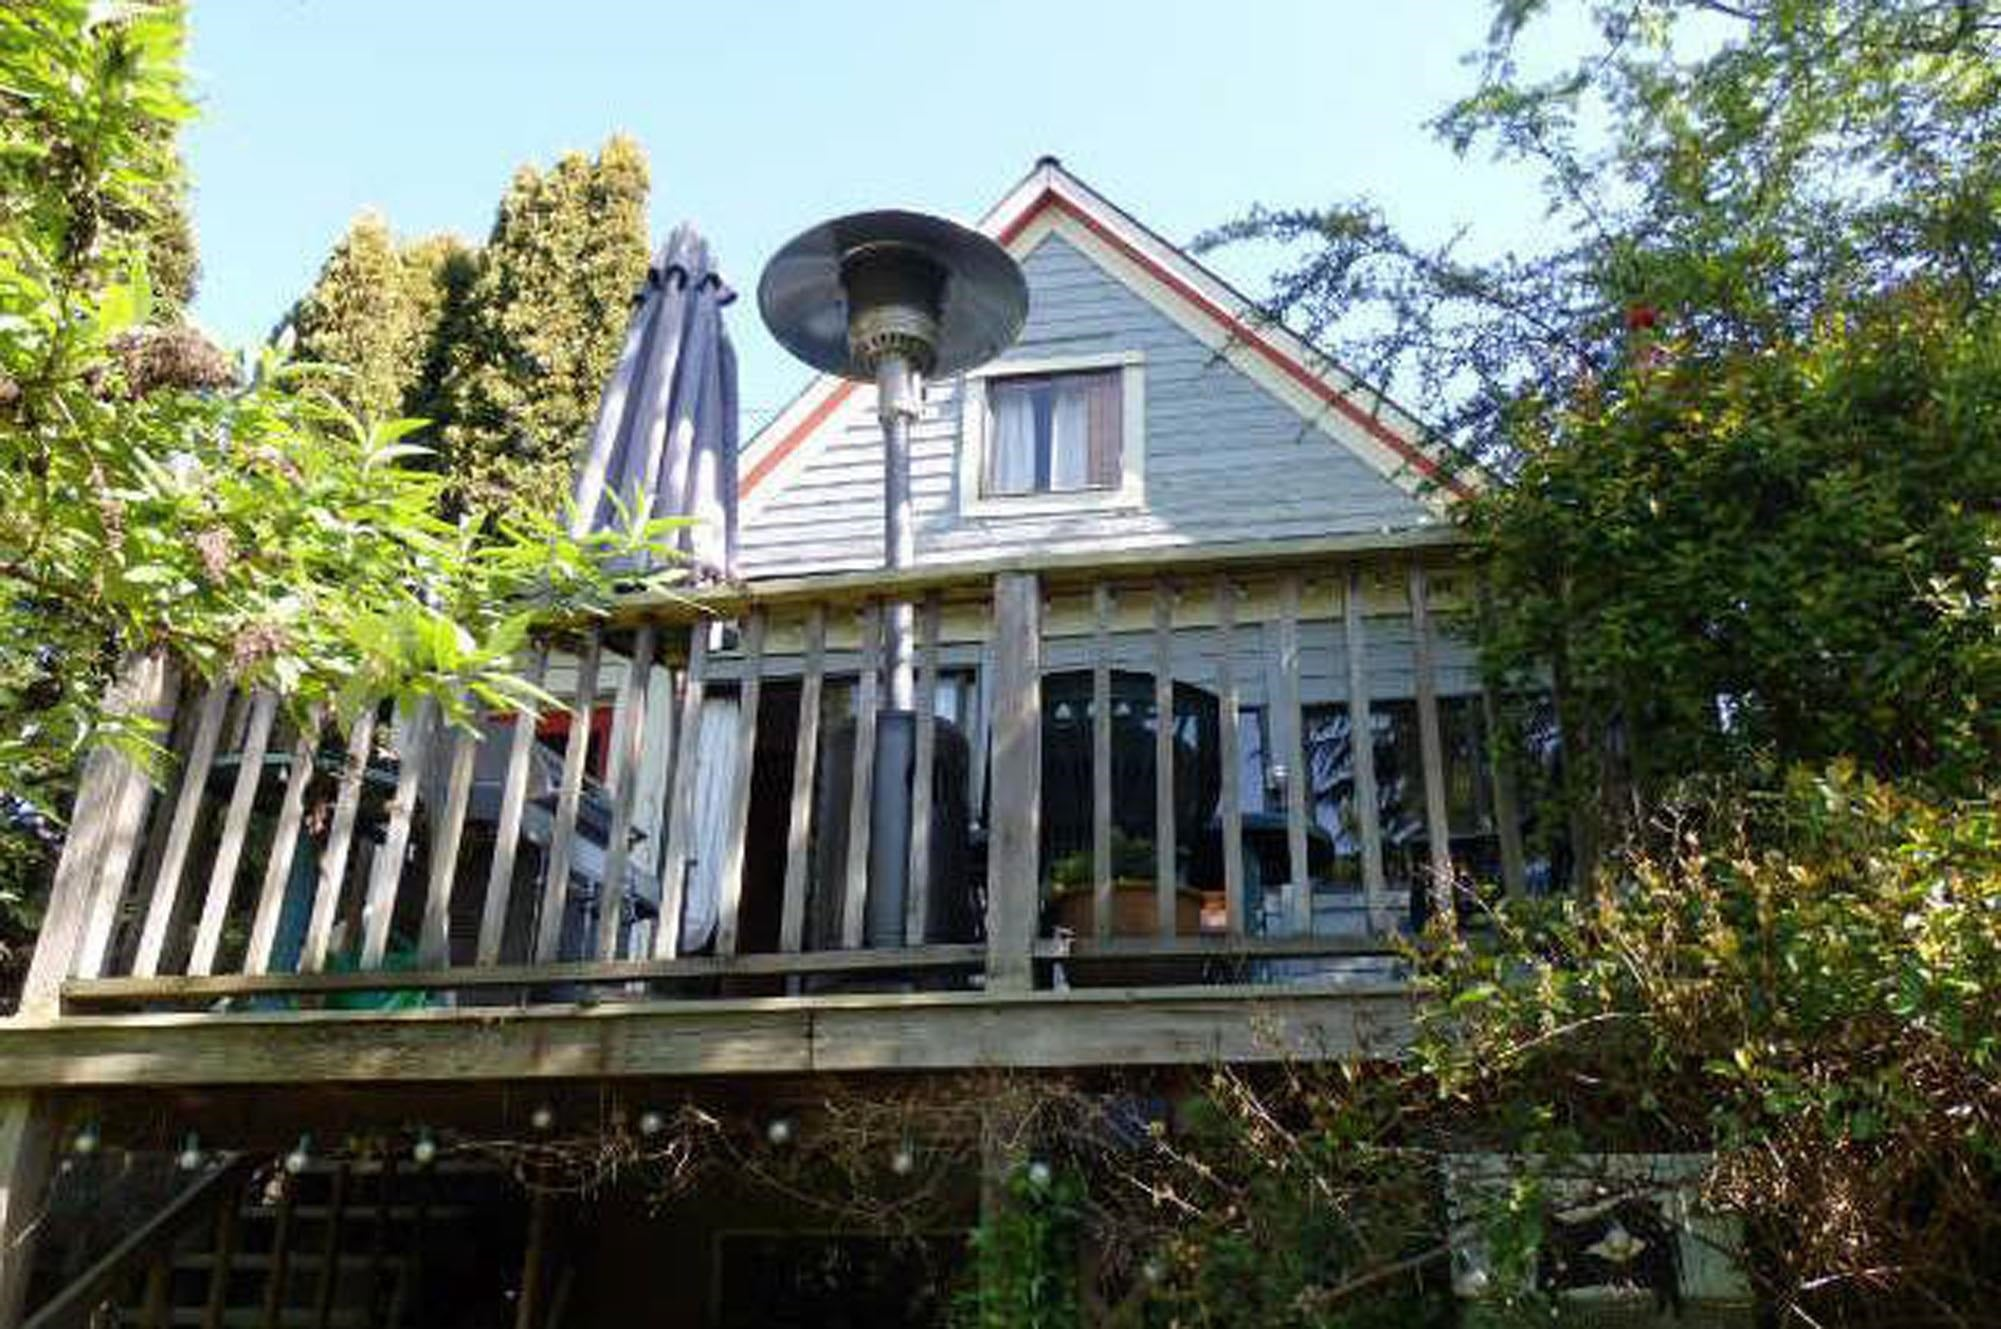 222 E 3RD STREET - Lower Lonsdale House/Single Family for sale, 3 Bedrooms (R2622037) - #1